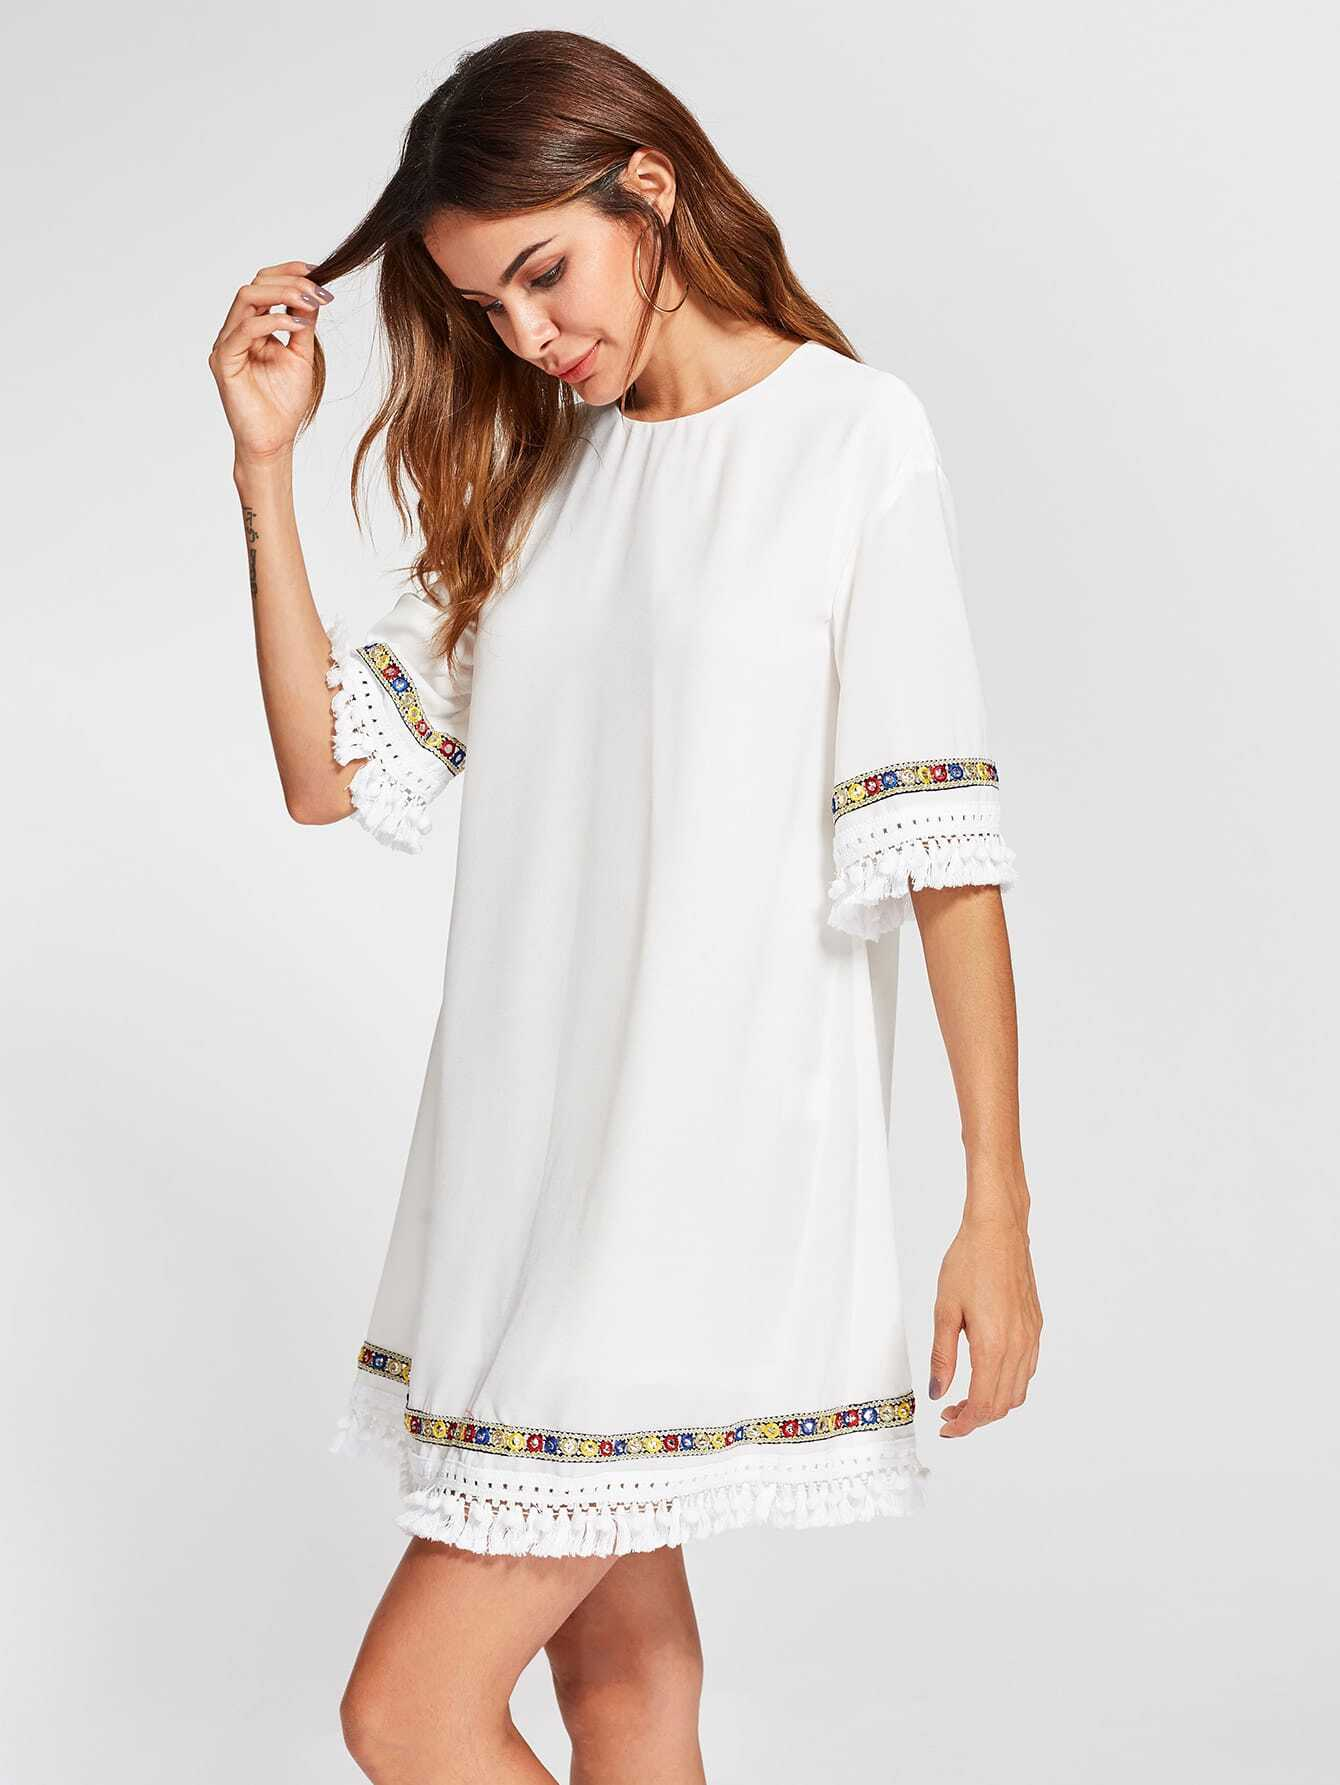 Embroidered Tape And Knotted Fringe Detail Dress dress170725707